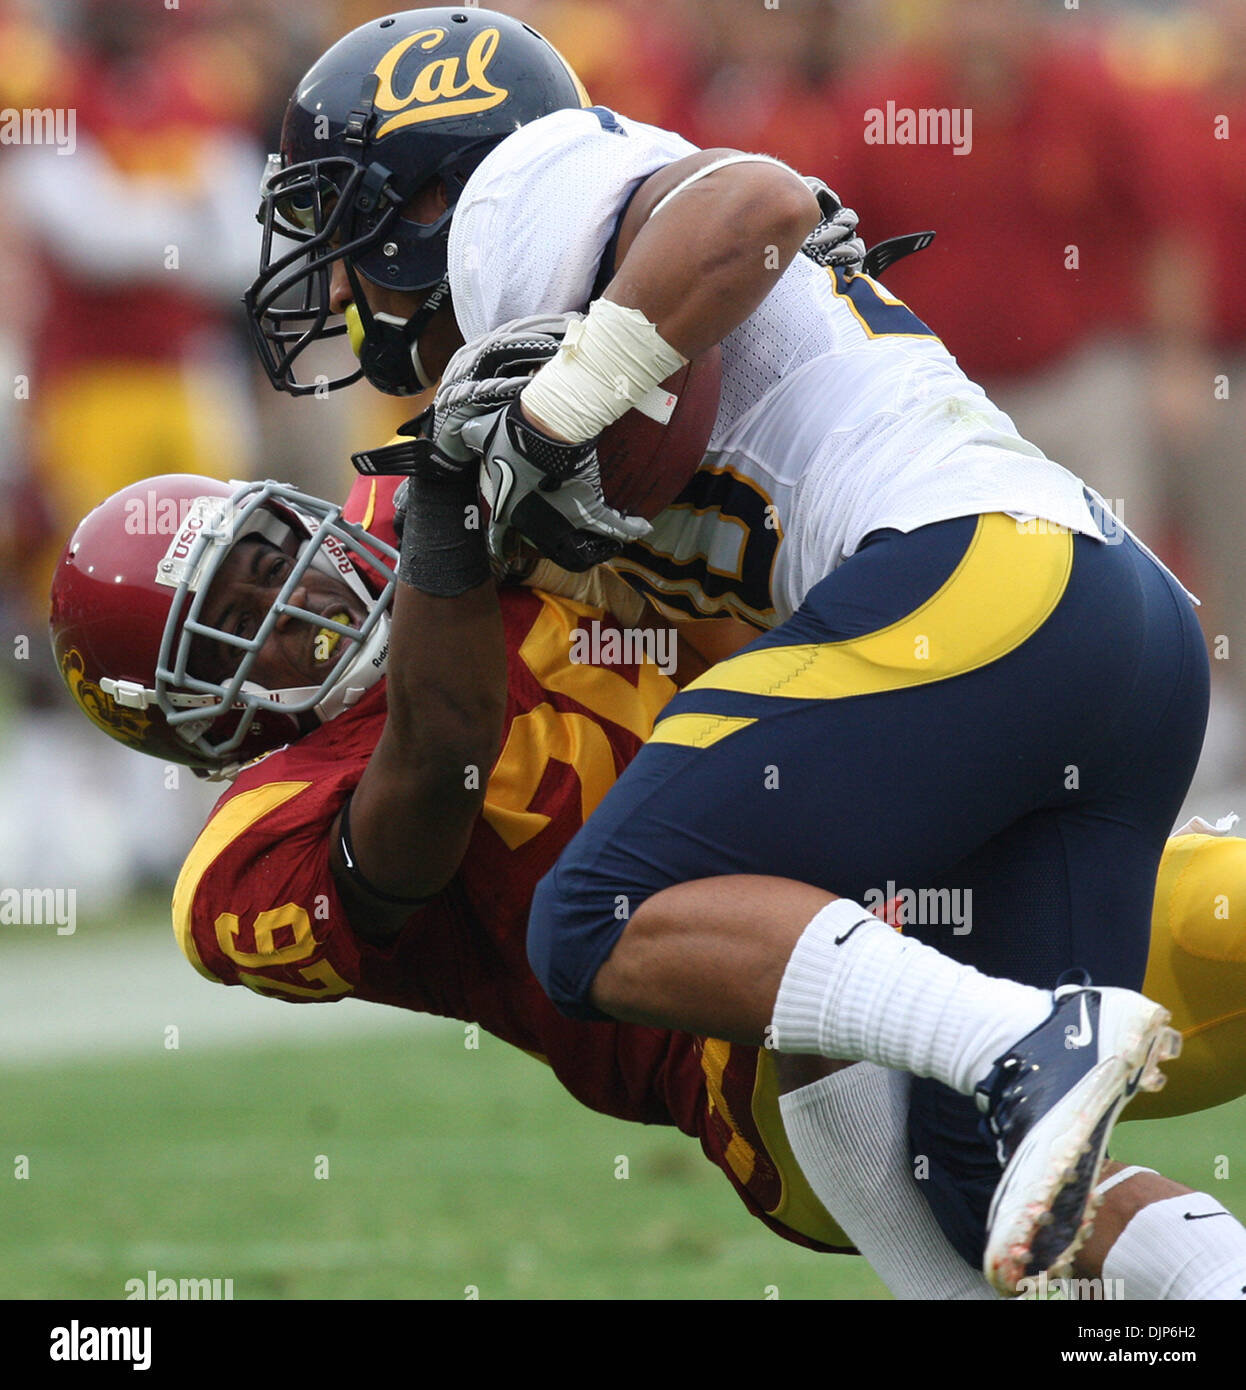 Apr. 10, 2008 - Los Angeles, California, U.S. - Southern California cornerback Daniel Harper (26) tackles California running back Isi Sofele (20) for a loss of yards in the first half during a NCAA, PAC 10 football game at the Los Angeles Memorial Coliseum on Saturday, October 16, 2010, in Los Angeles. (SGVN/Staff Photo by Keith Birmingham/SPORTS) (Credit Image: © San Gabriel Valle - Stock Image